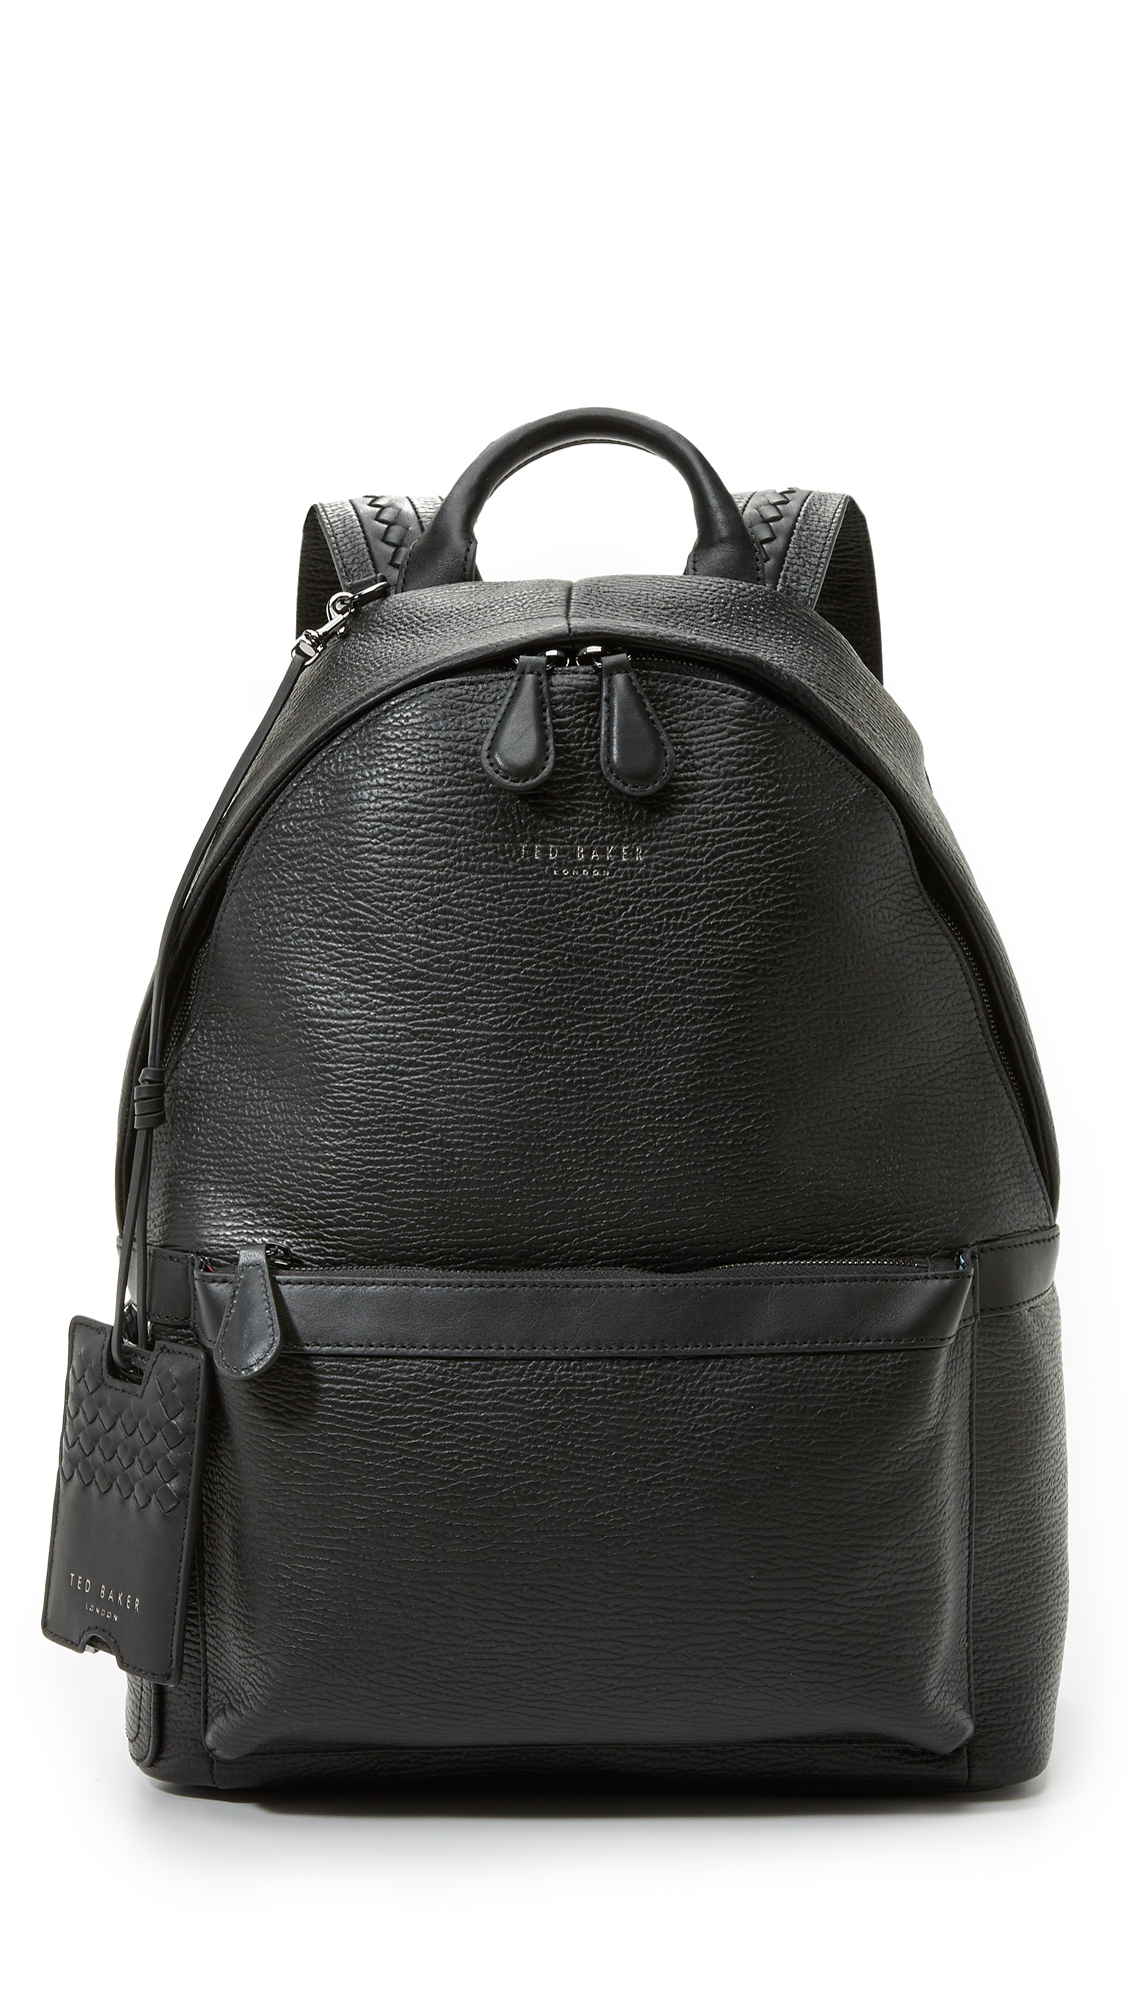 99eee29e0 Ted Baker Heyriko Leather Backpack in Black for Men - Lyst